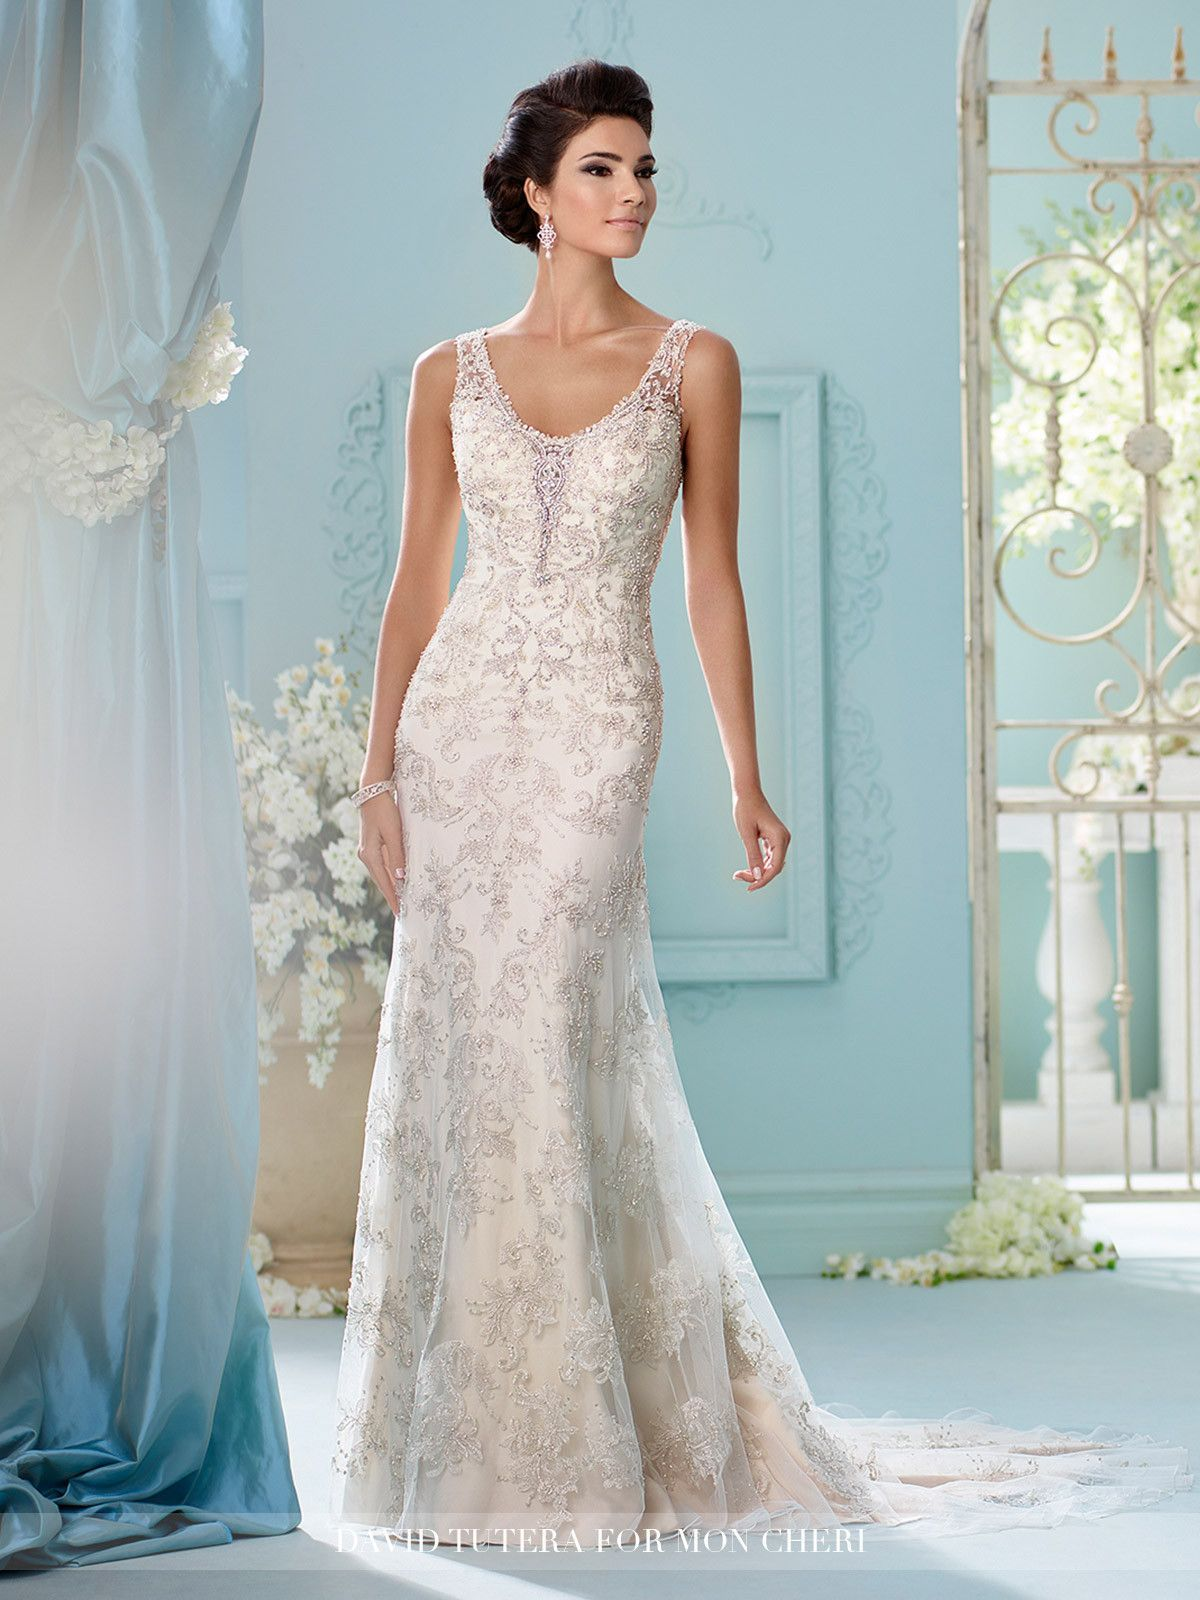 David Tutera - Sleeveless tulle over crepe soft satin and metallic hand-beaded embroidered lace fit and flare gown with beaded illusion shoulder straps, soft V-neckline trimmed with beading and illusi